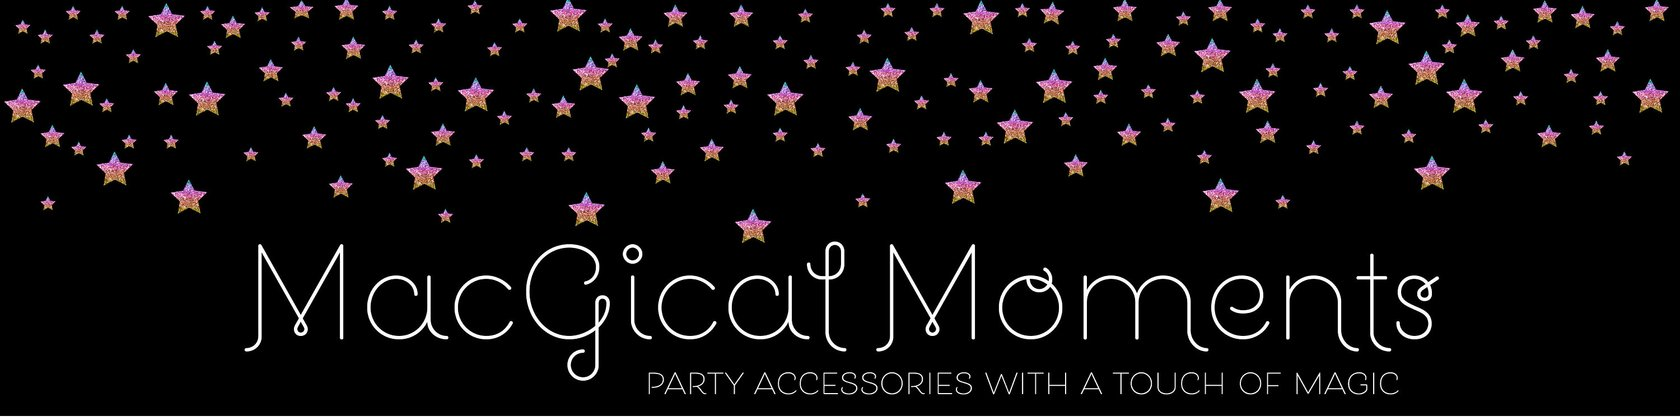 MacGical Moments - Macgicalmoments.com offers party accessories with A Touch of Magic for that special person in your life. Do you need to feed your craving for the latest party trends Macgicalmoments.com has cute things for birthdays and other special events. Enter promo code fashioncraving15 to get 15% off your first order today.